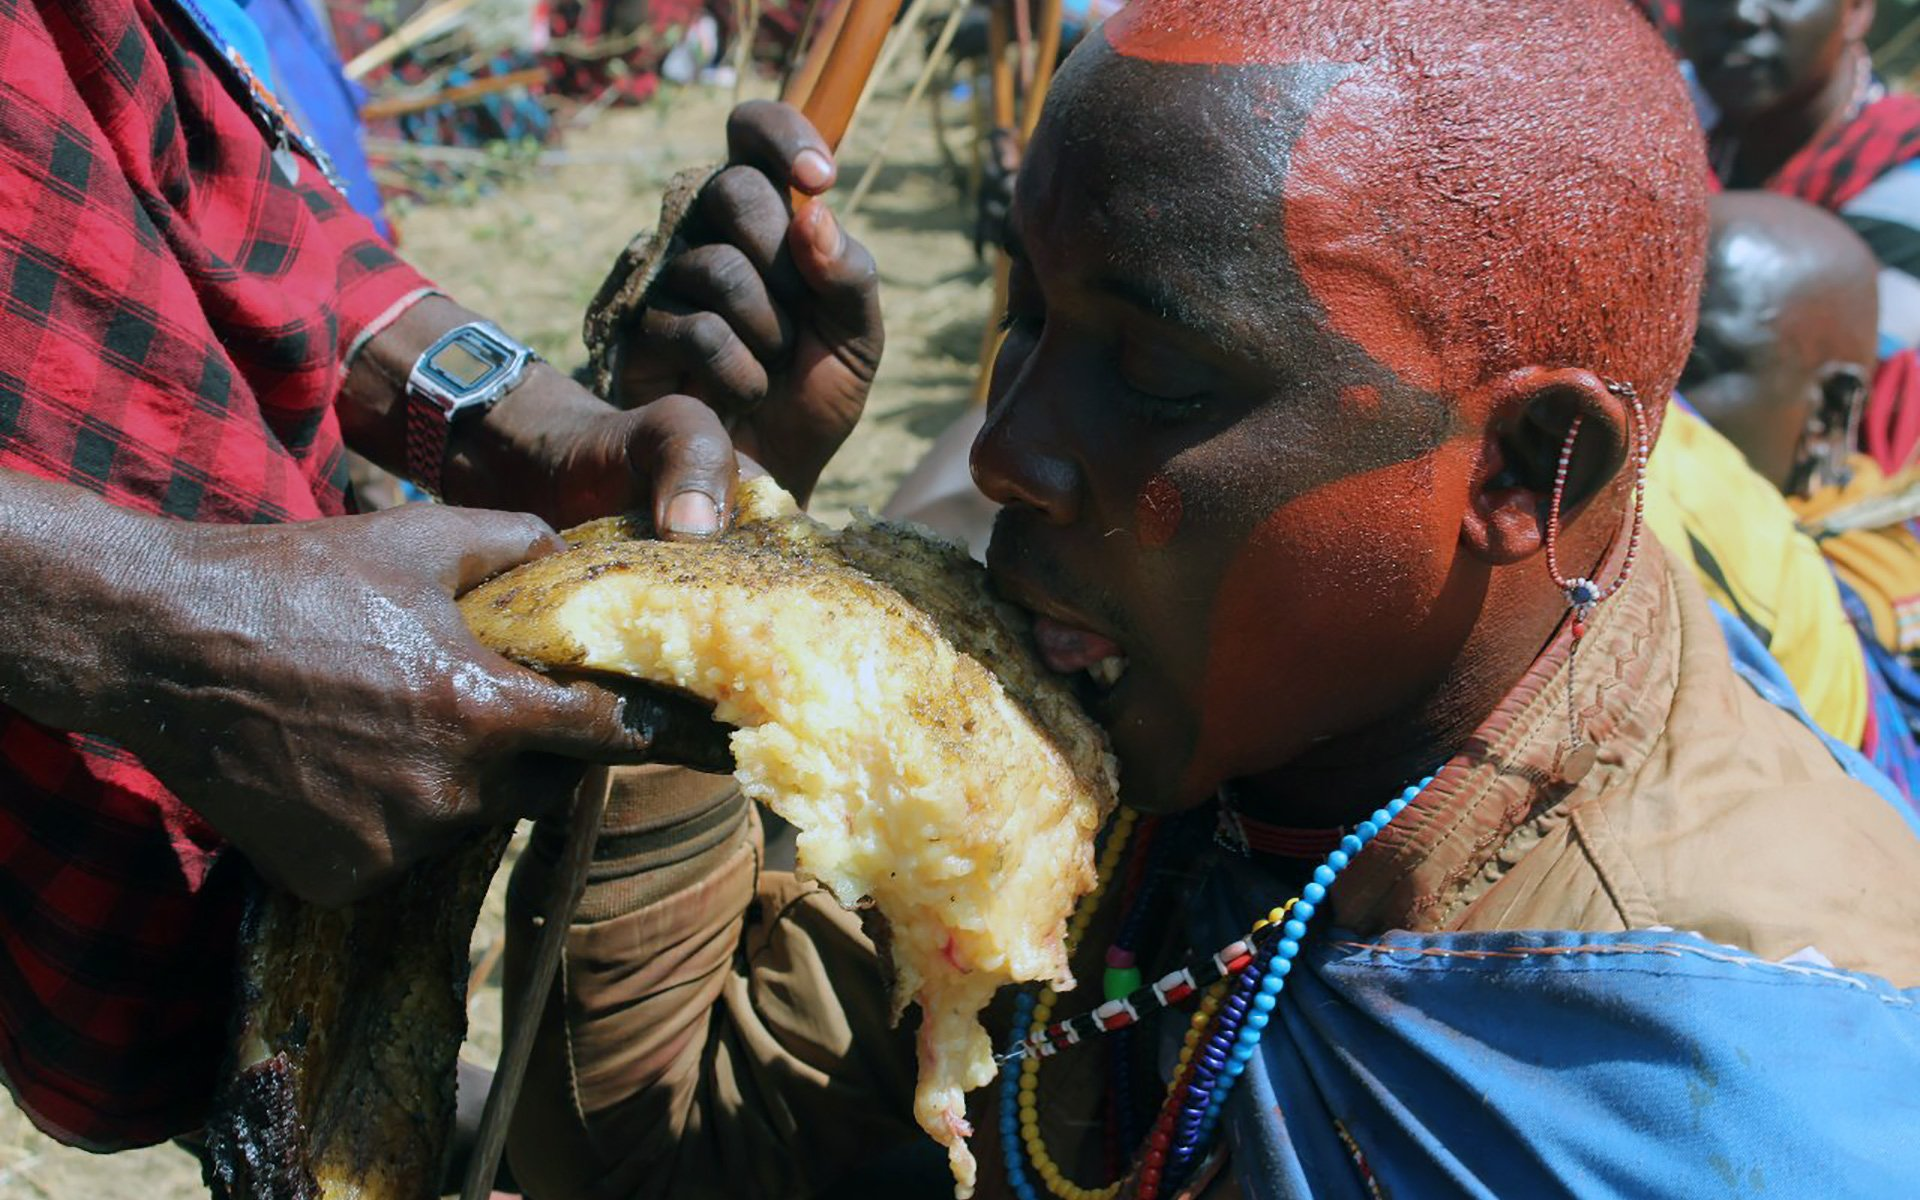 The three Maasai rites of passage are so culturally significant that they have found a place on UNESCO's List of Intangible Cultural Heritage in Need of Urgent Safeguarding.